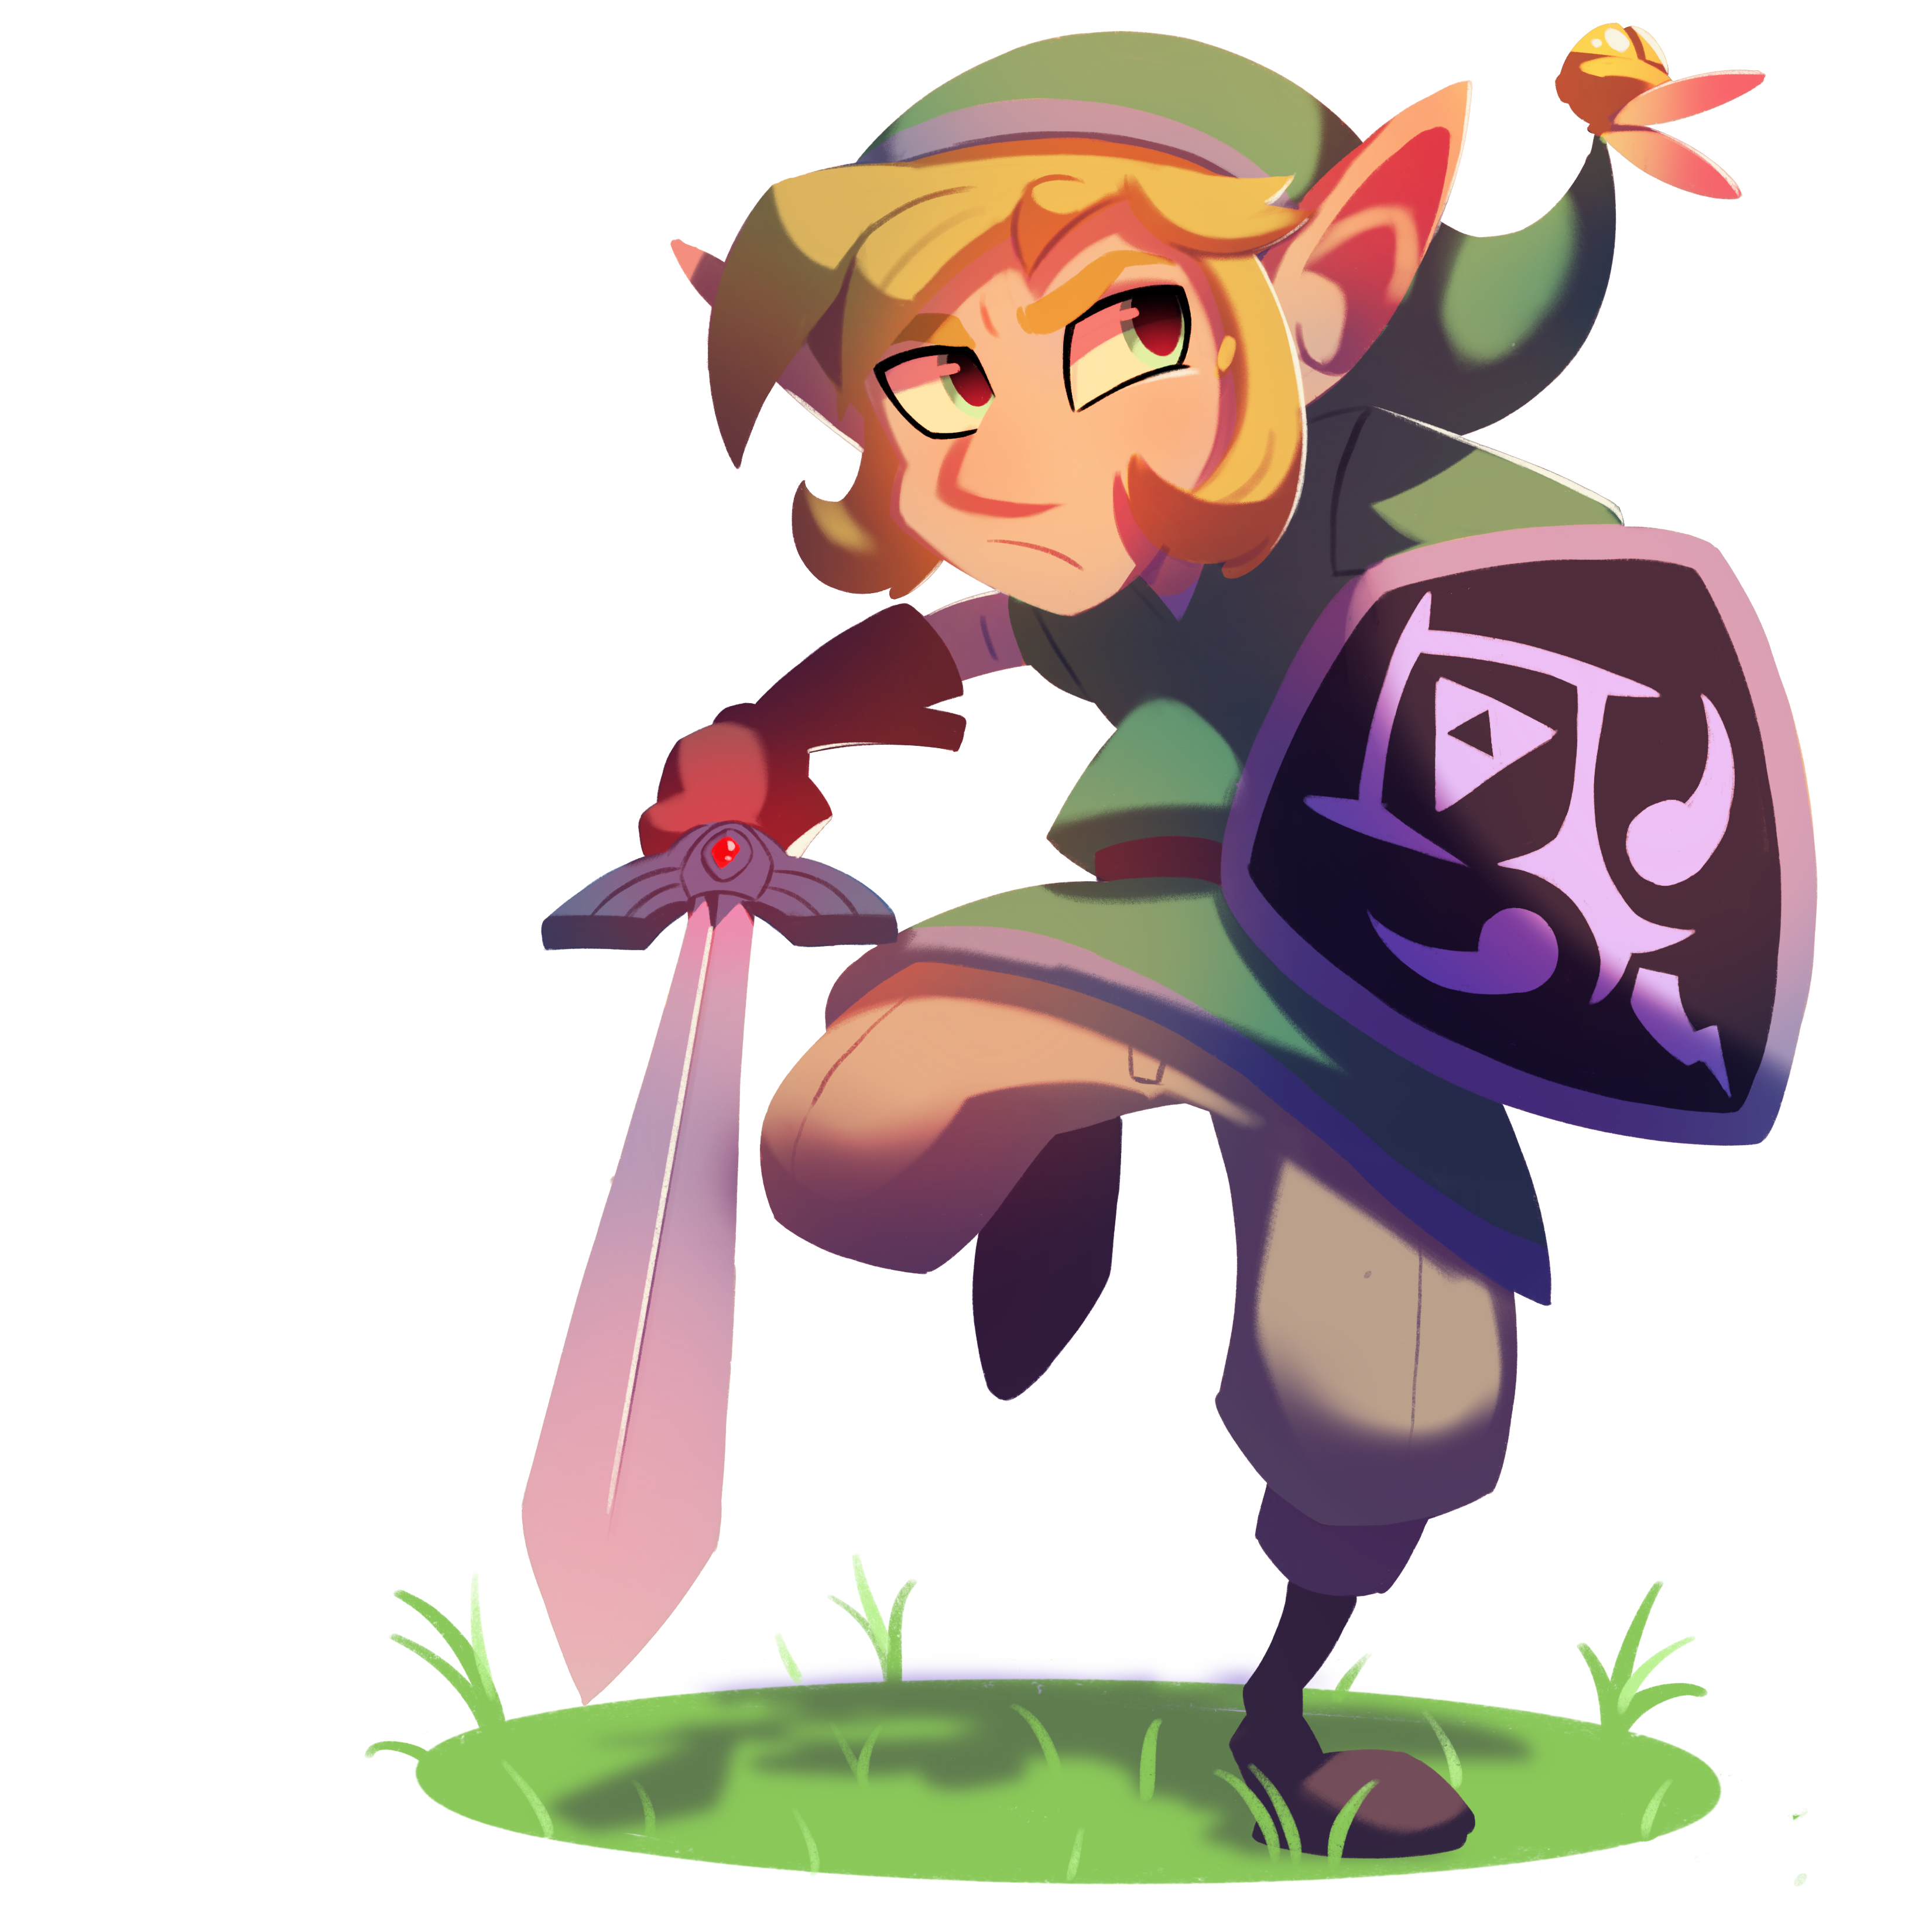 Link (updated)